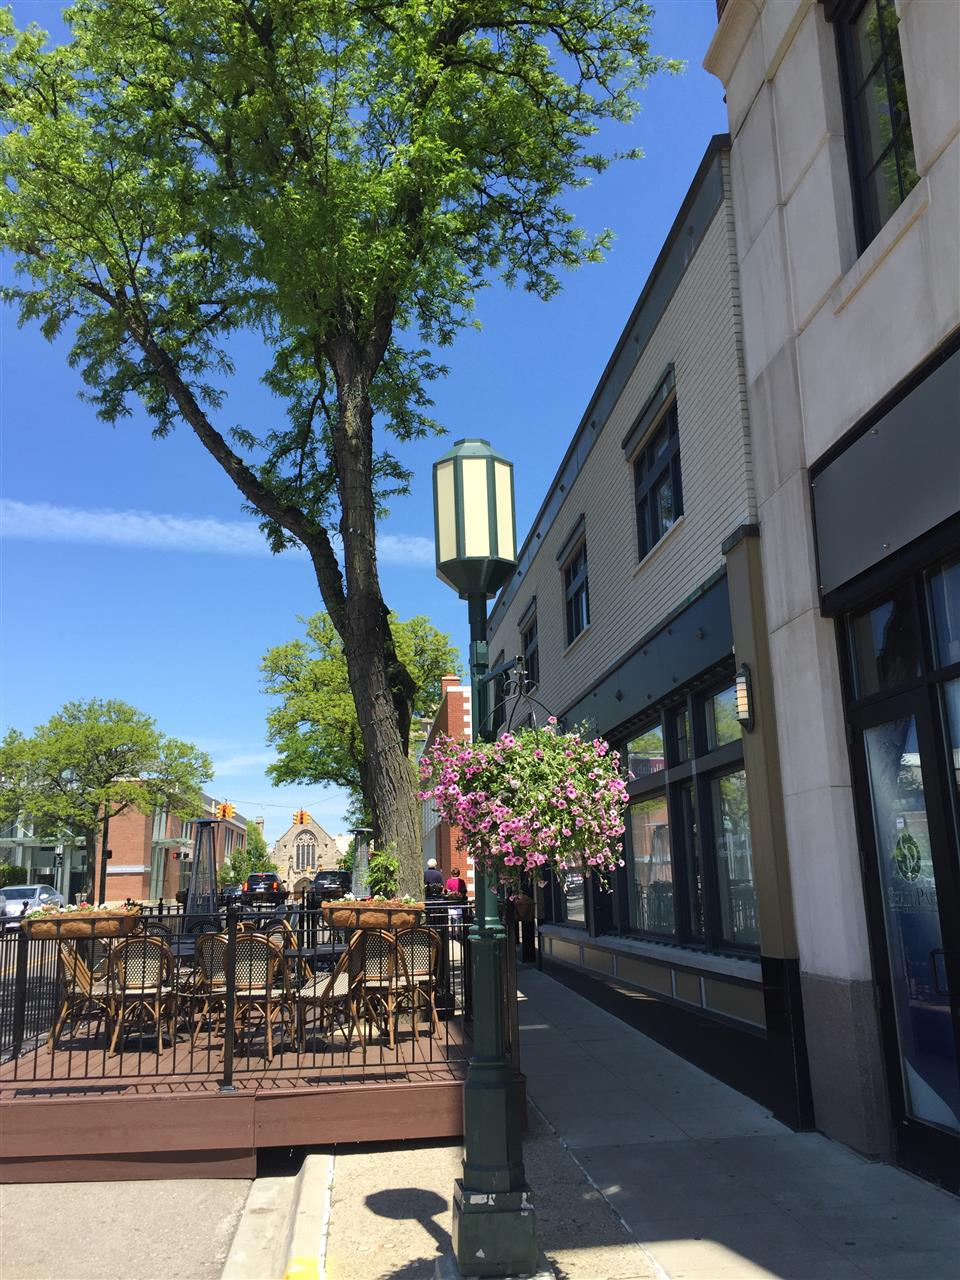 Tallulah Wine Bar & Bistro, offers seasonal American fare & a diverse wine list in a polished, softly lit space with sidewalk seating. Birmingham, Michigan #LeadingRElocal #Birmingham #Michigan